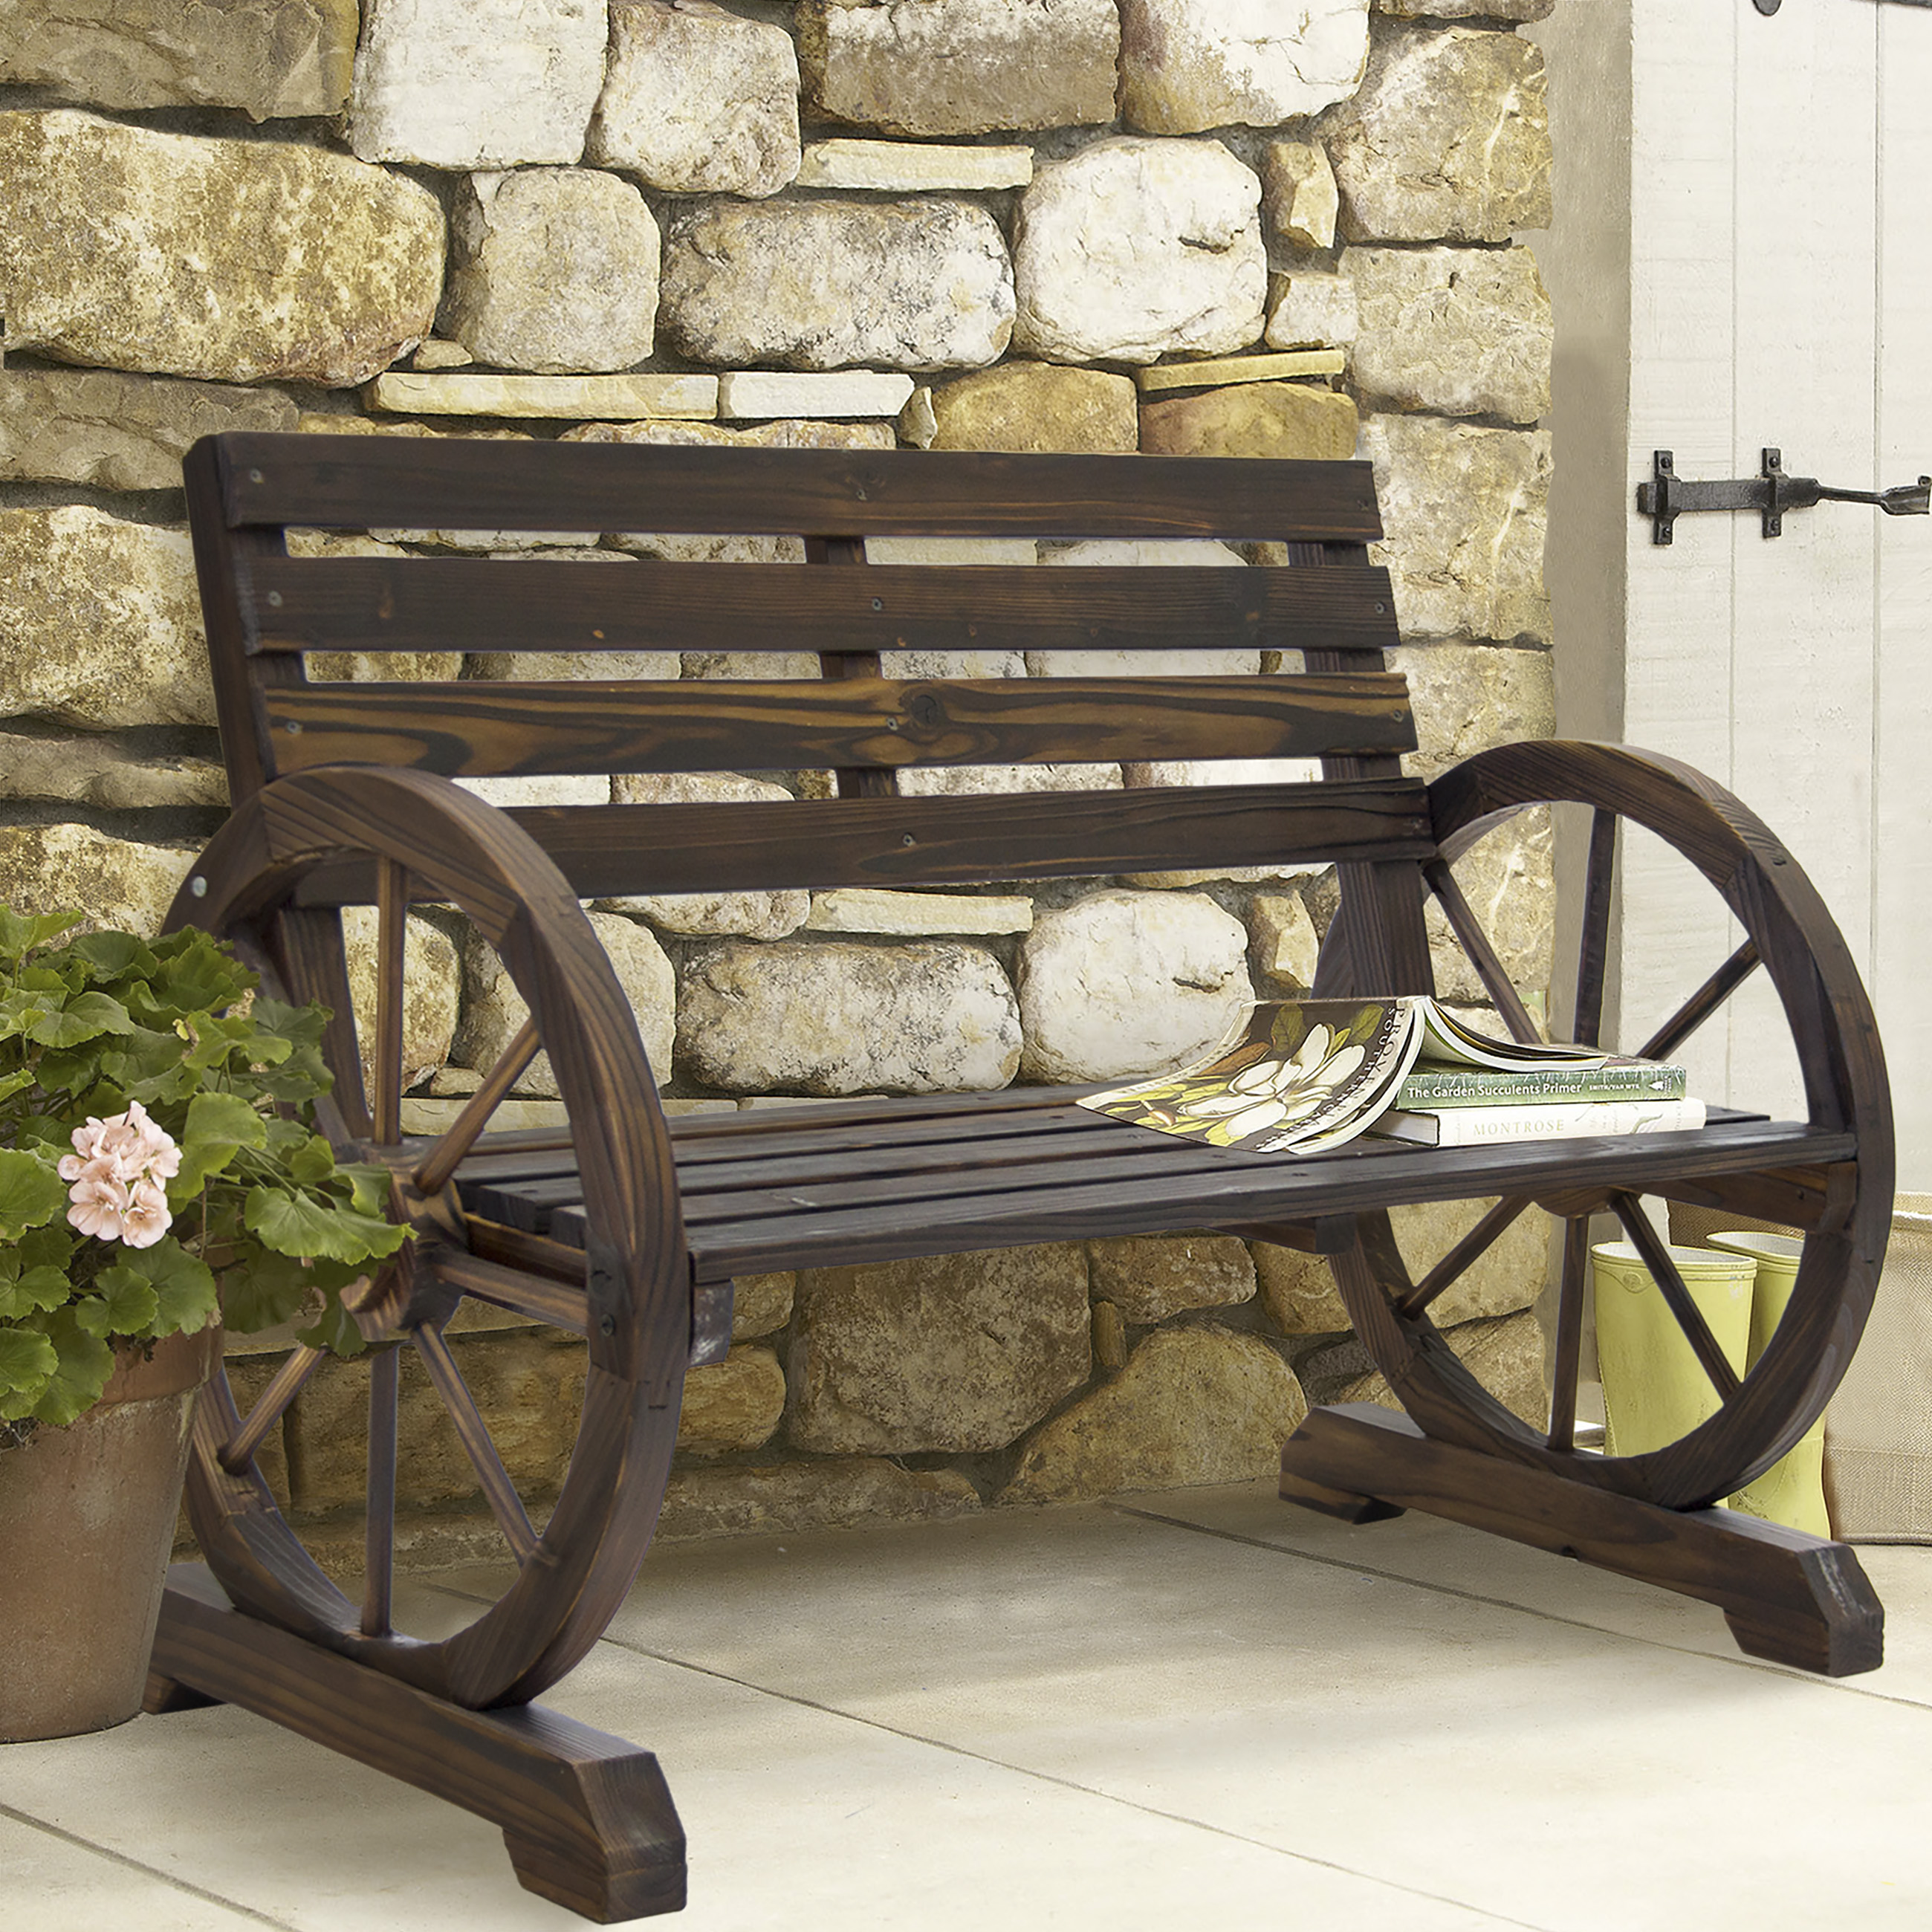 bcp patio garden wooden wagon wheel bench rustic wood design